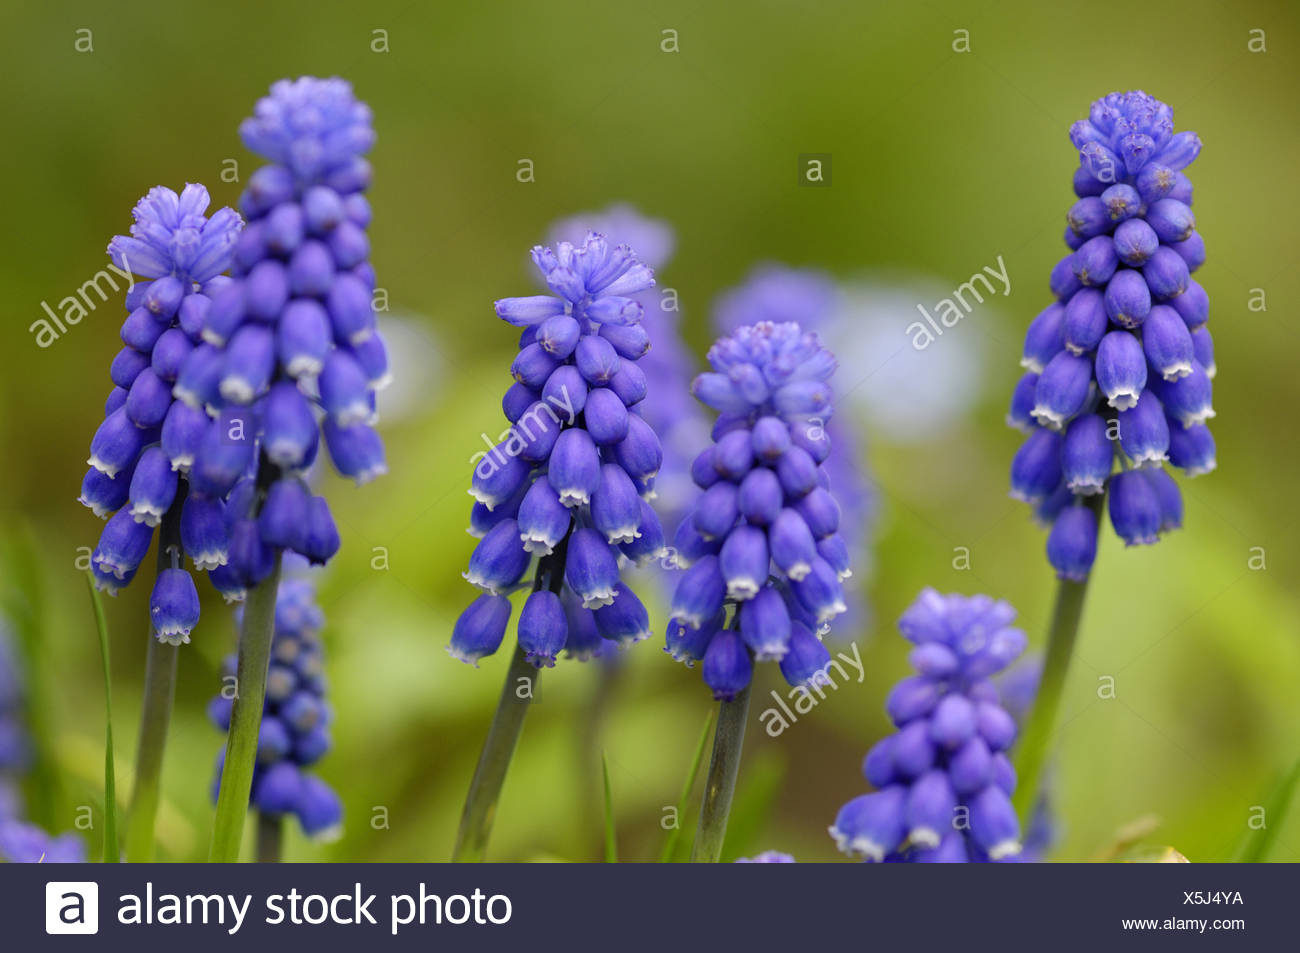 grape hyachinth (Muscari spec.), some inflorescenses Stock Photo